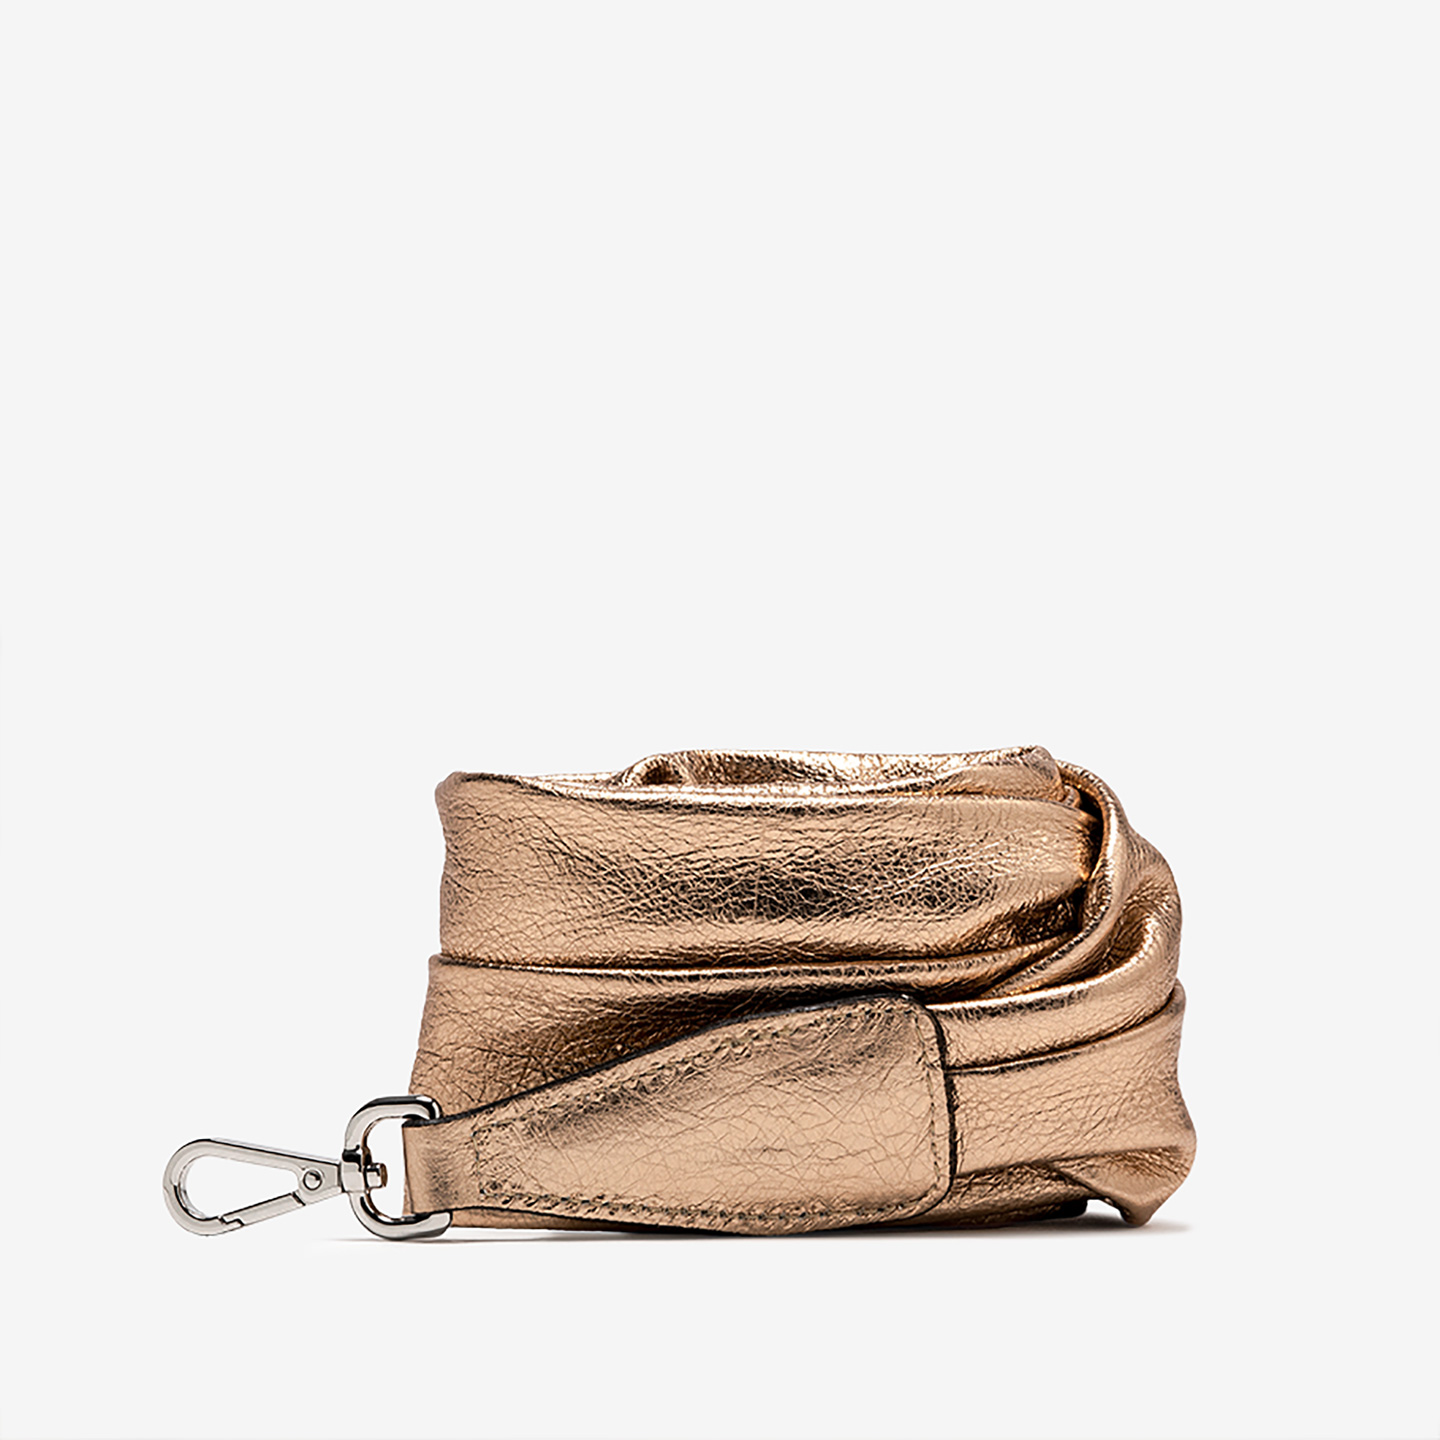 GUM: FIXED SIZE ECO LEATHER STRAP